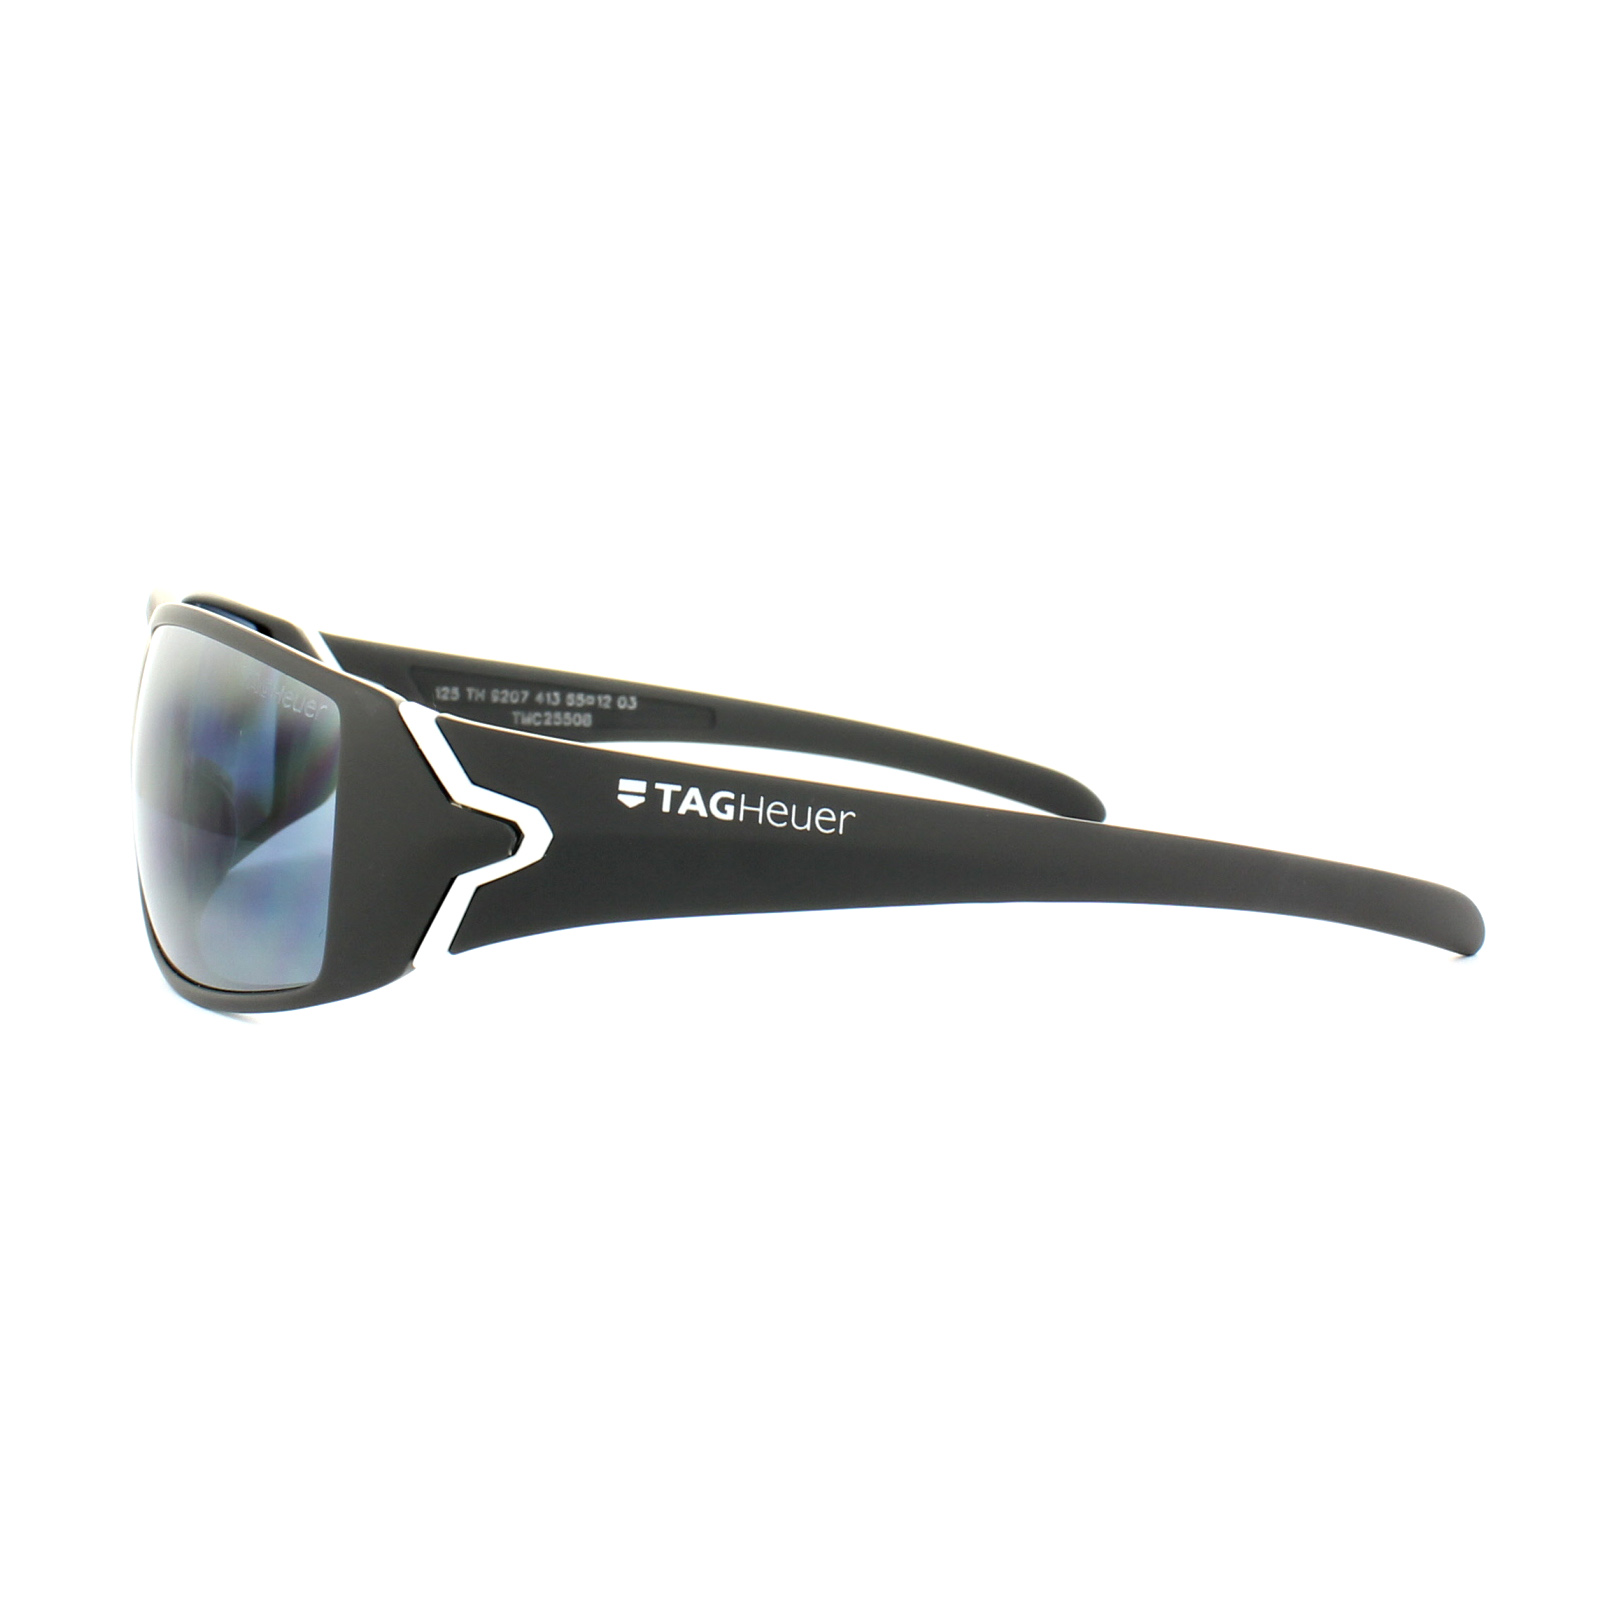 TAG HEUER RACER TEAM USA AMERICAS CUP TH9202 107 Mens Sport Sunglasses RED GREY